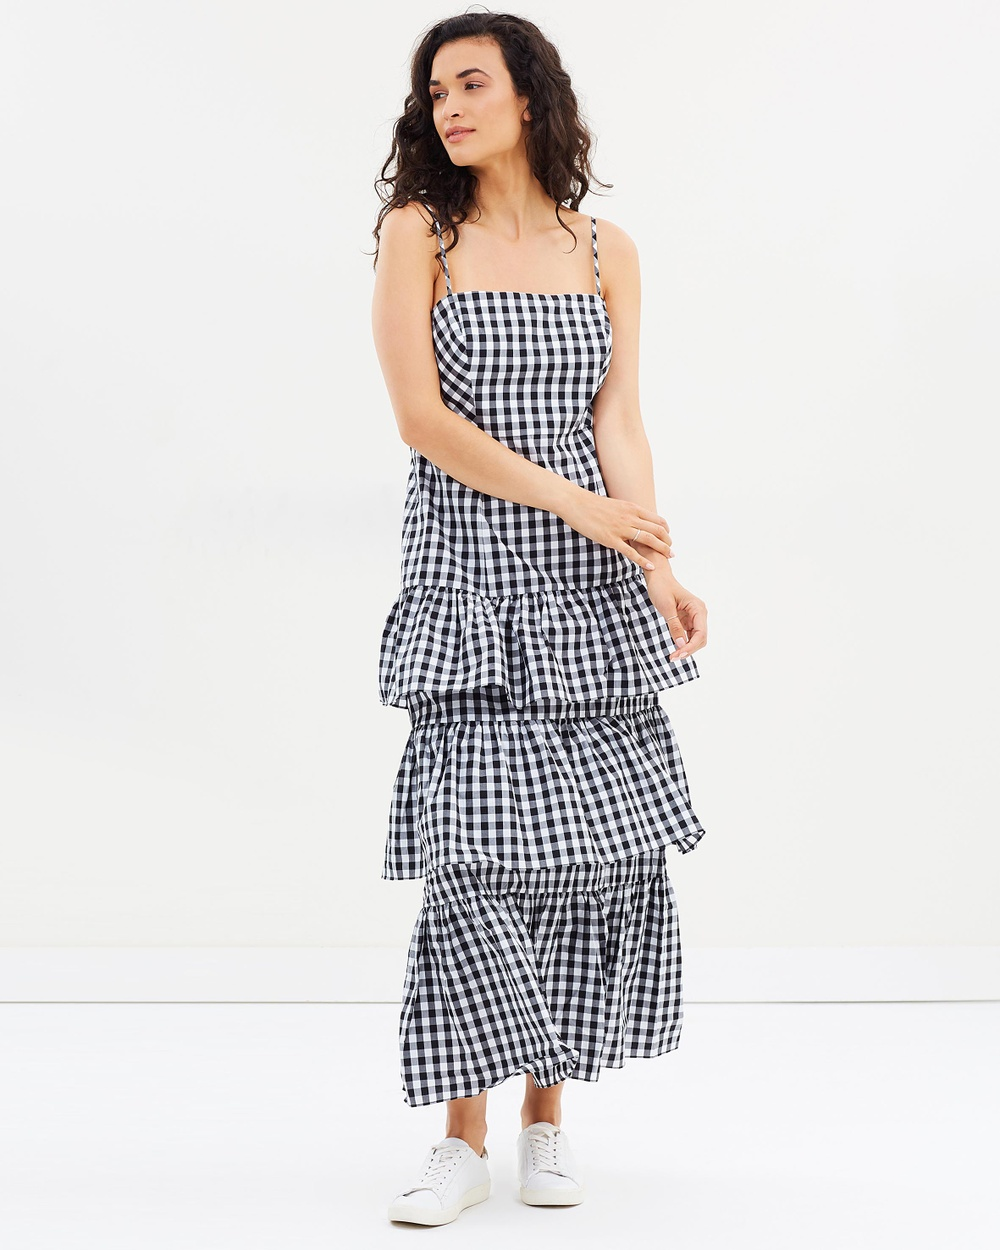 J.Crew Dabble Gingham Long Gown Printed Dresses Black Dabble Gingham Long Gown